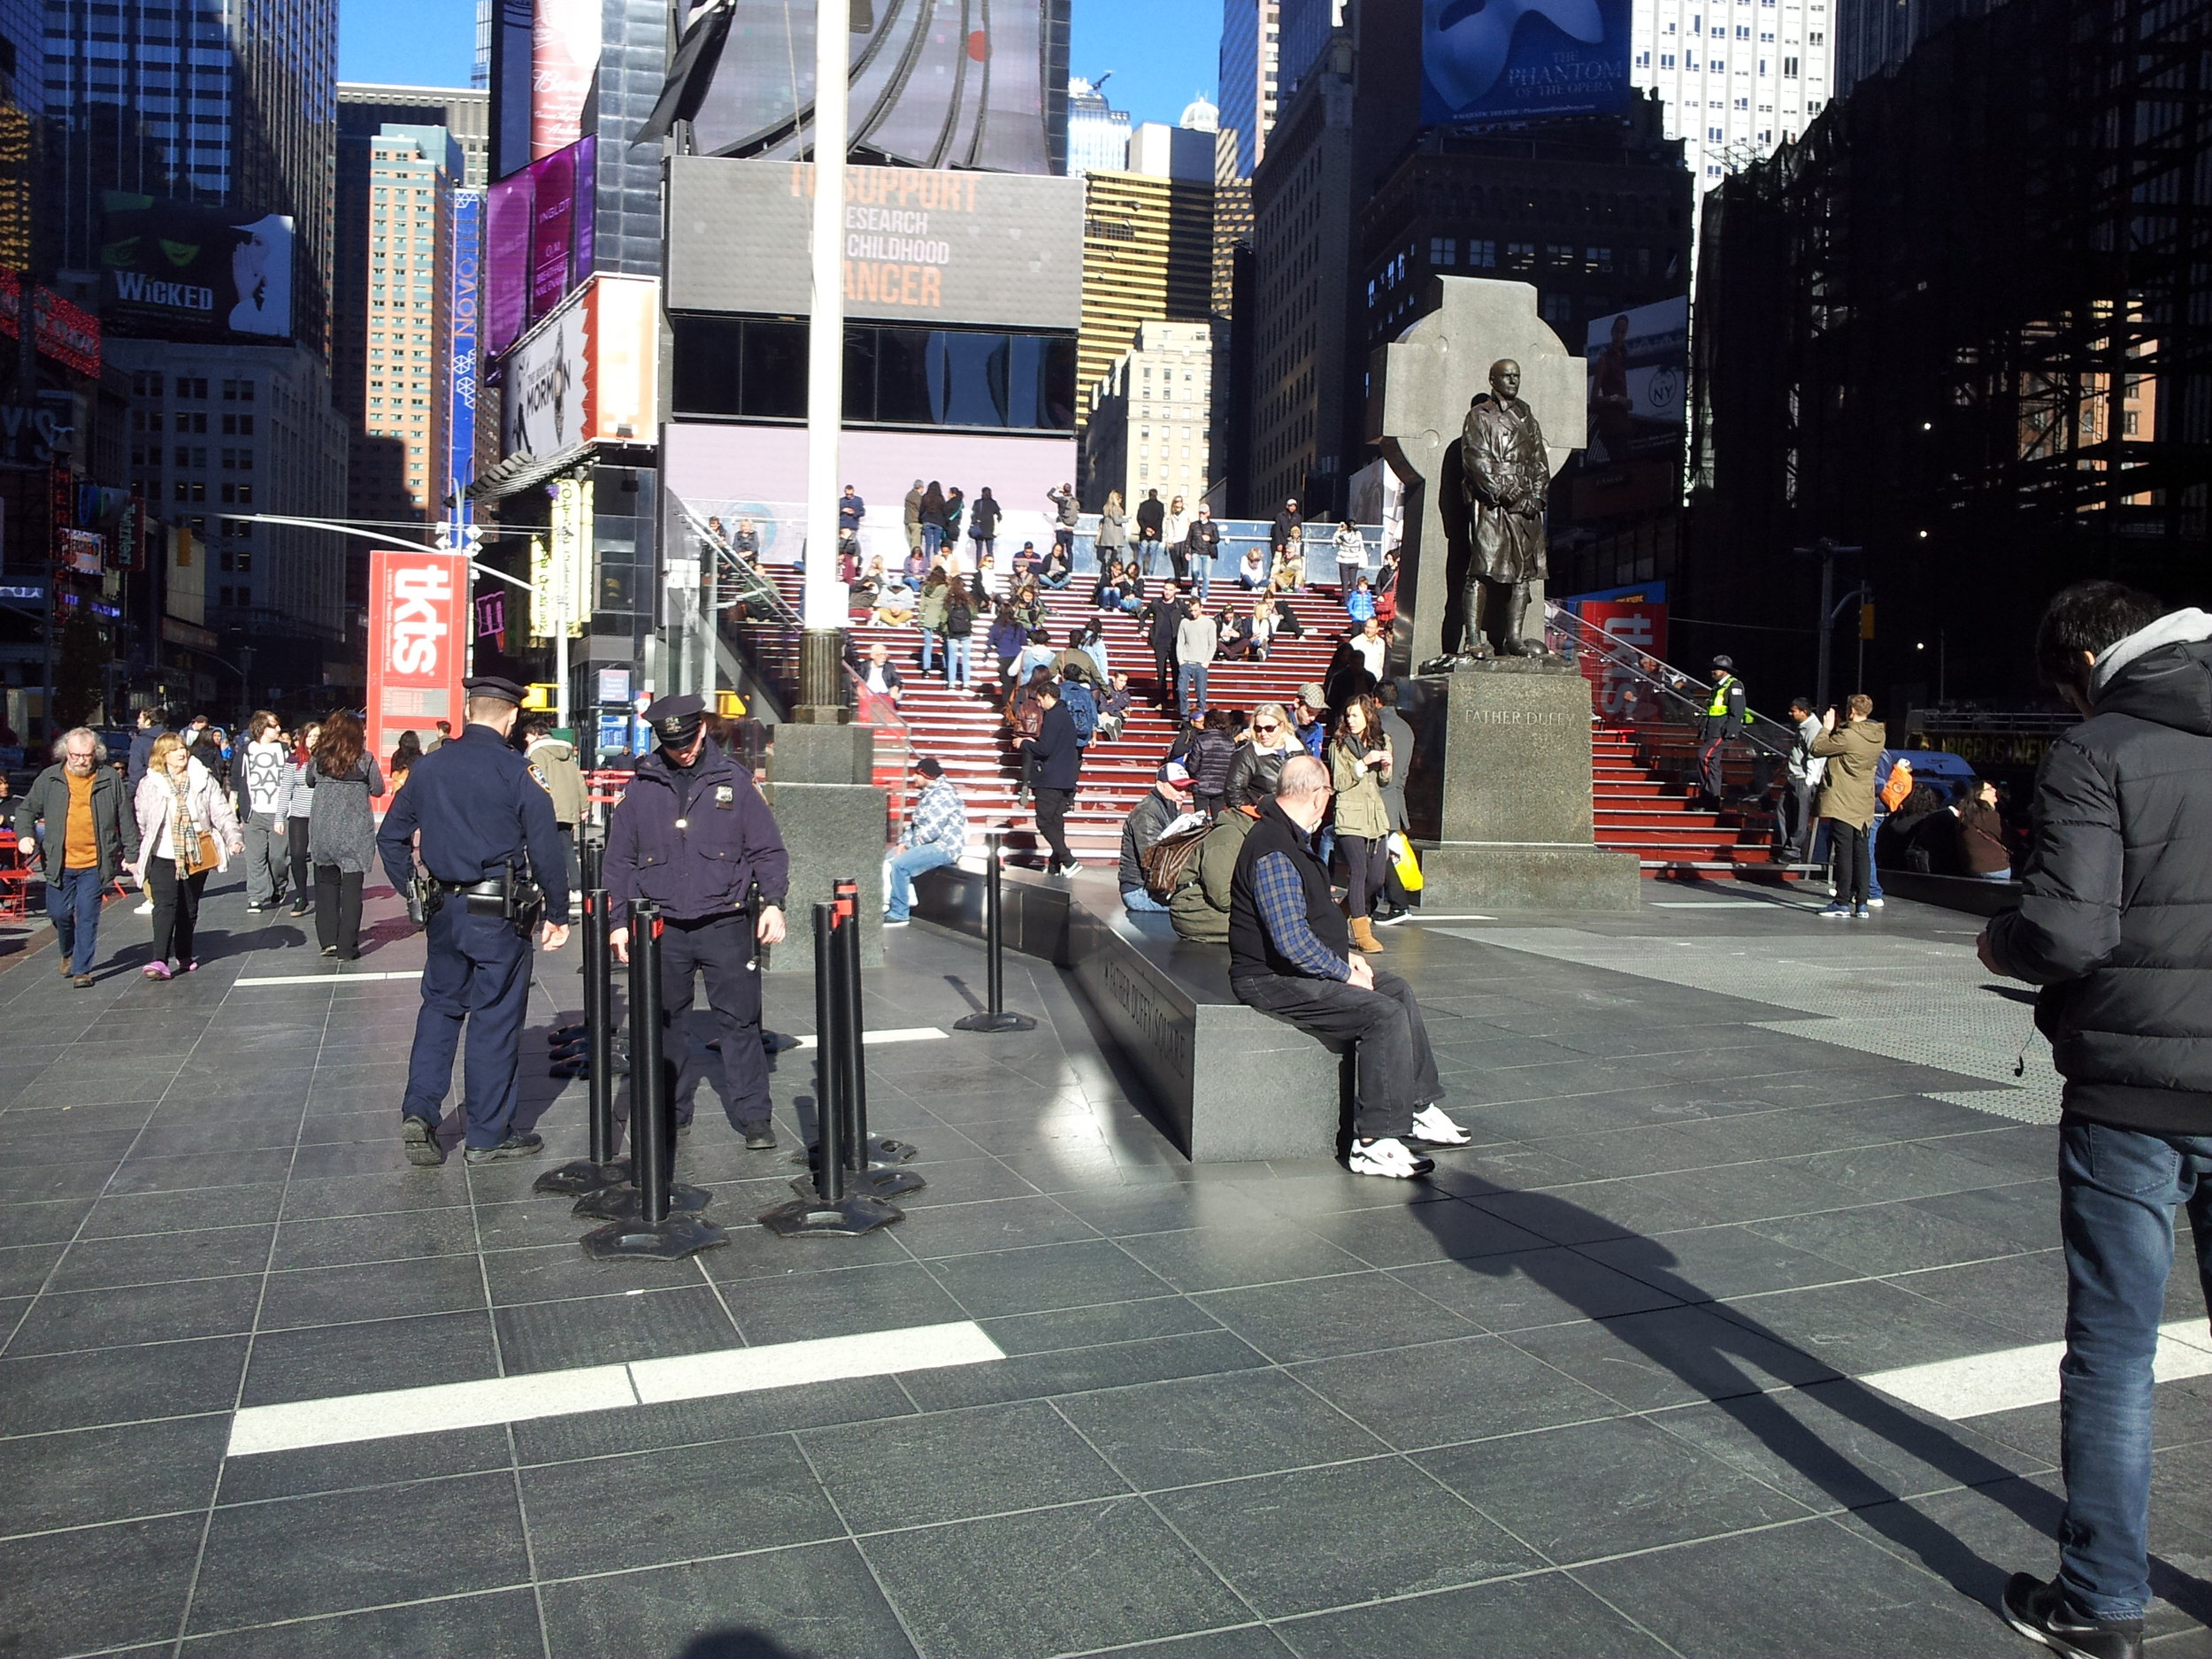 On the busiest days, over 460,000 pedestrians visit Times Square. Following the release of a threatening ISIS video, the NYPD increased security in the area. Photo by Davis Campbell.